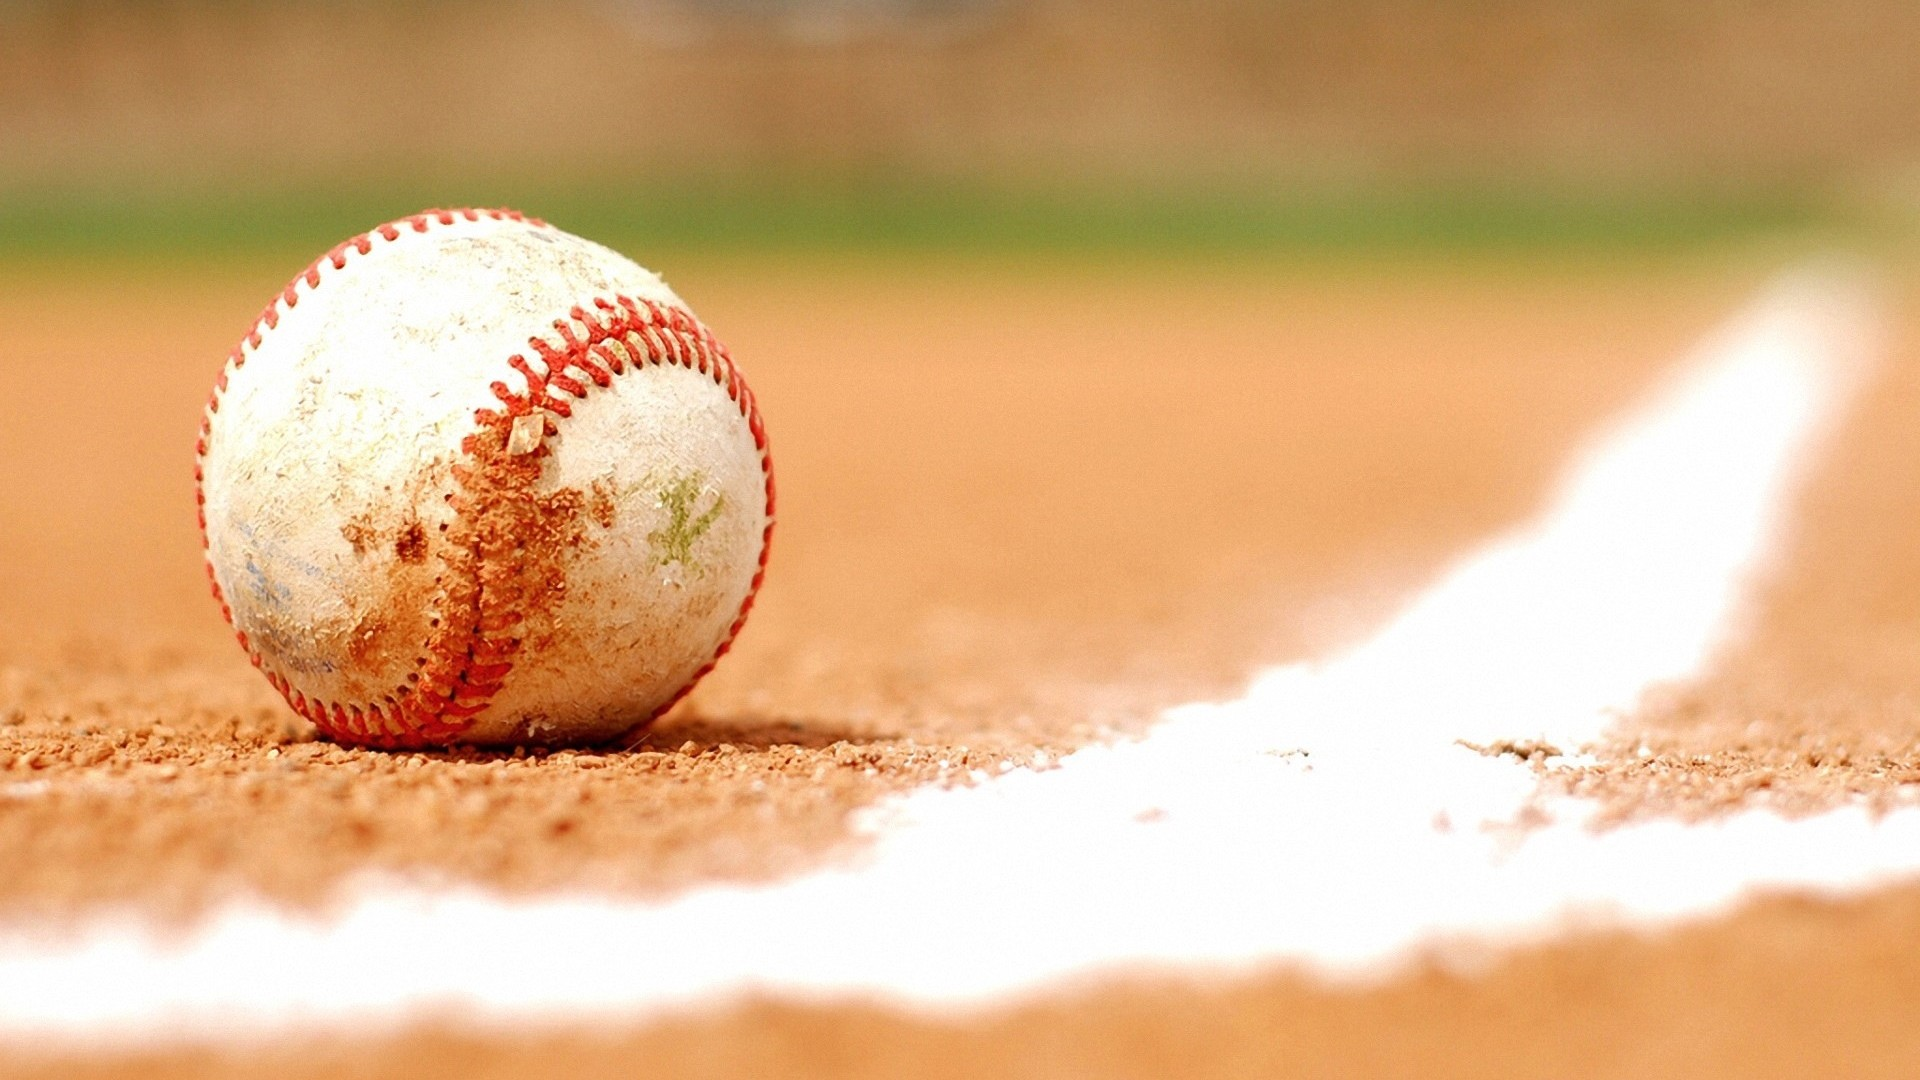 1920x1080 Ball and baseball field wallpaper: